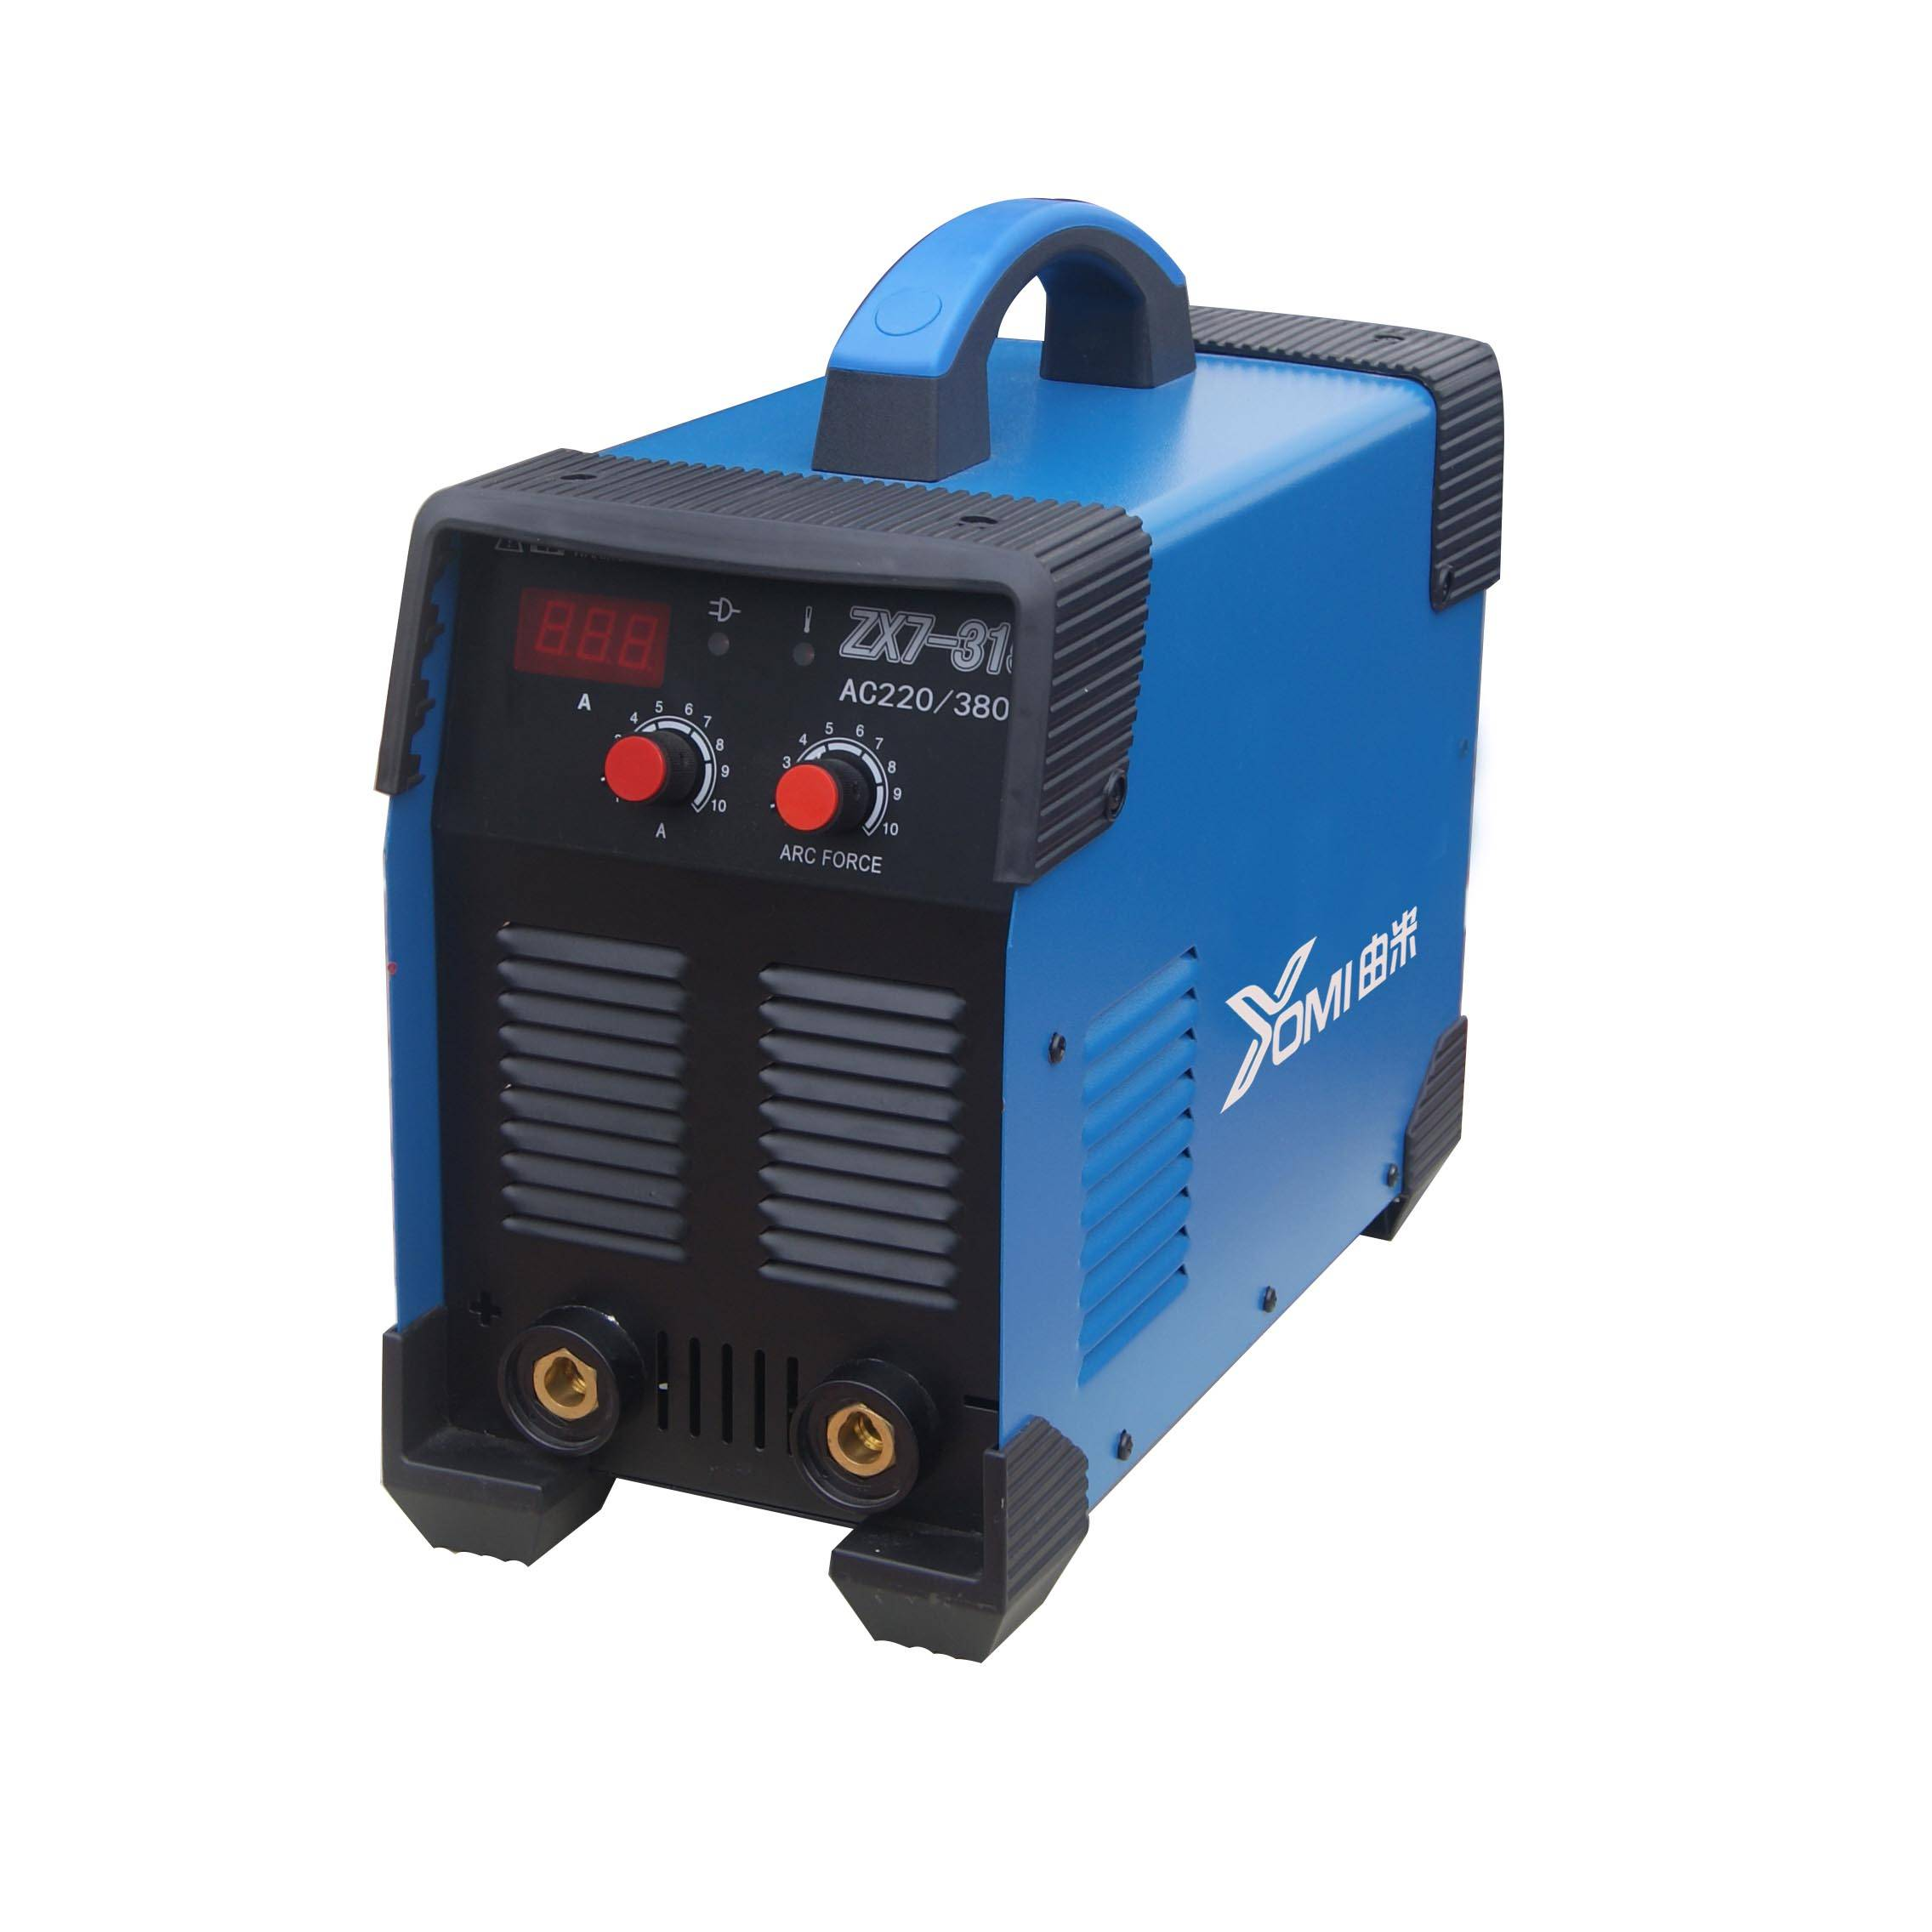 Hot sale Tube Cutting Machine -